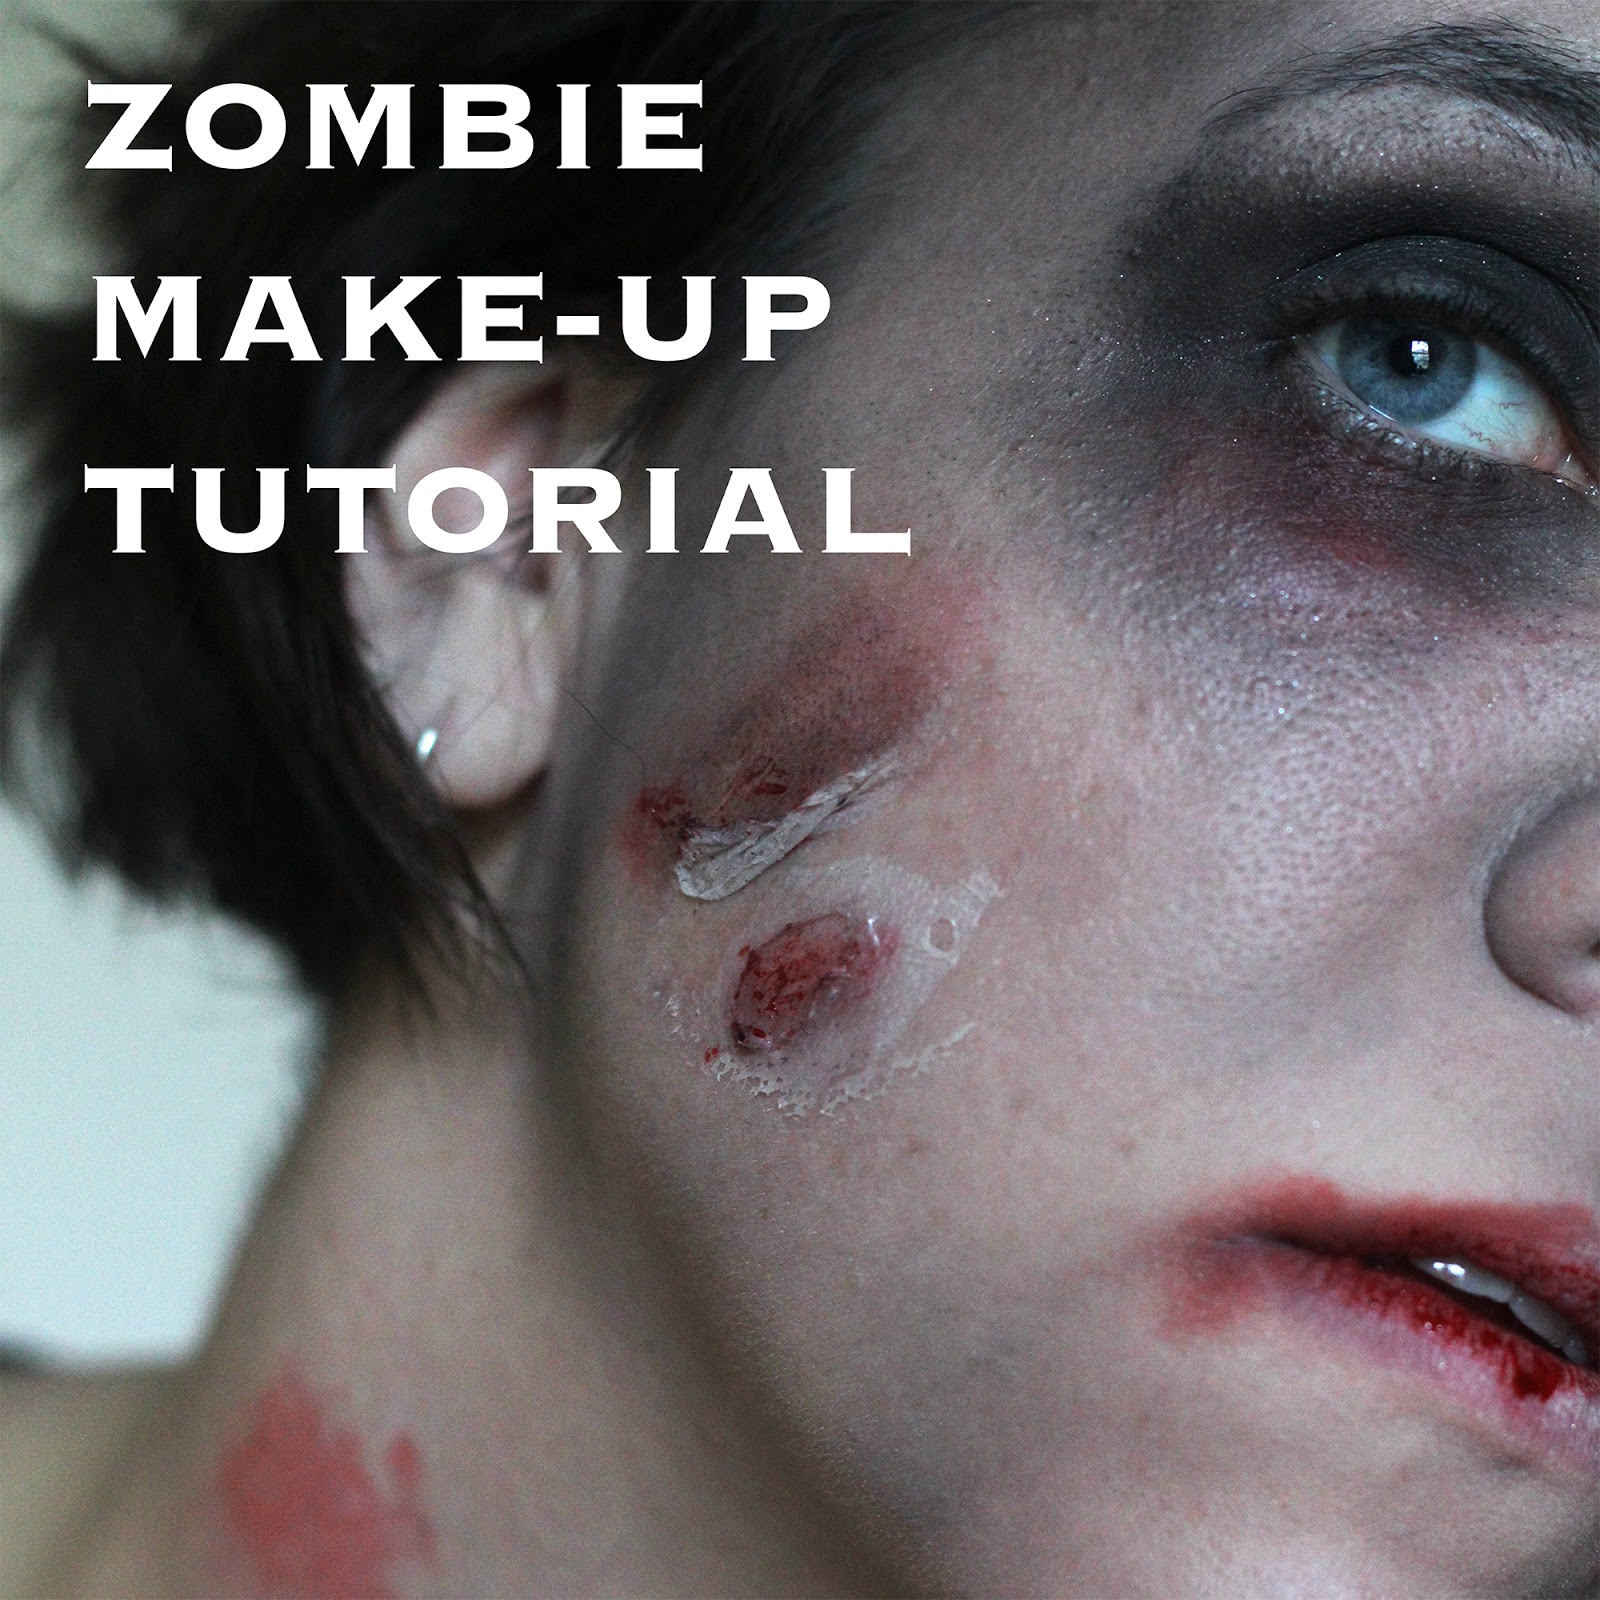 how to make zombie makeup with flour